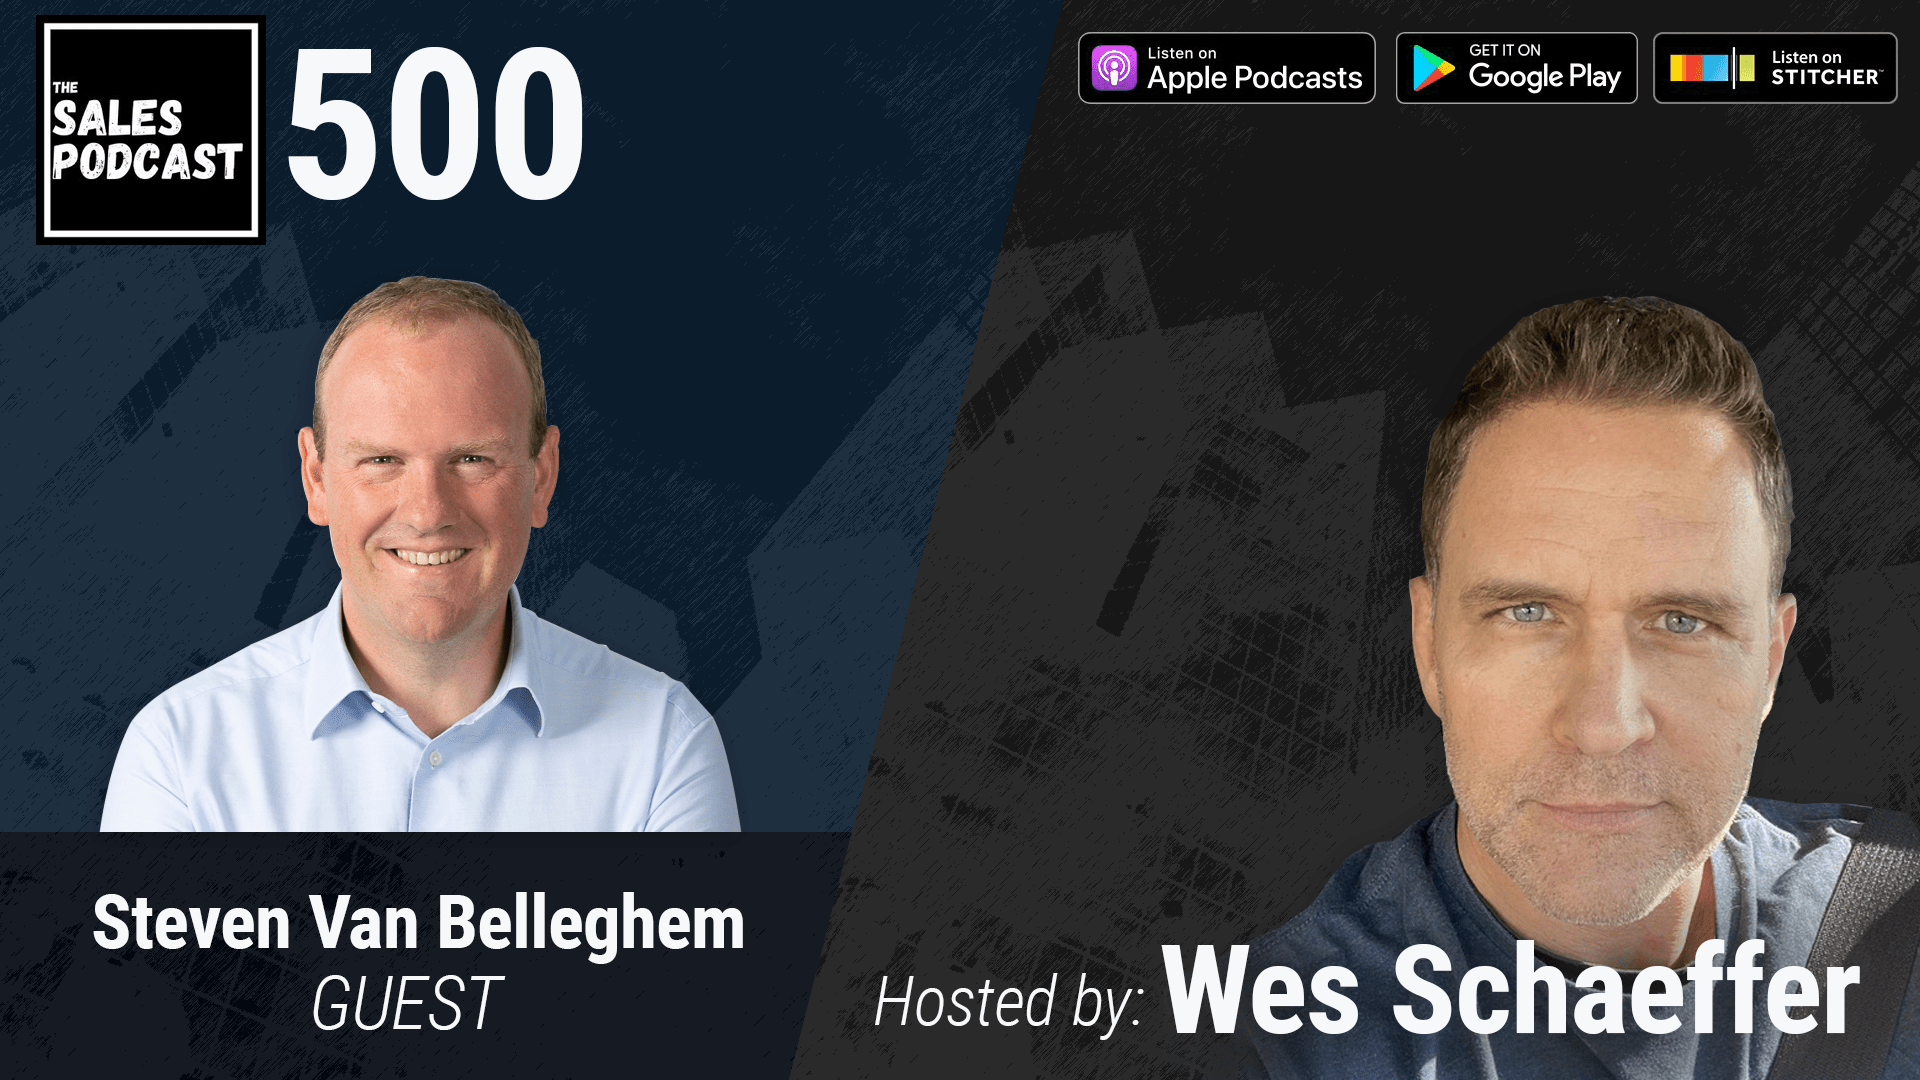 Being Average Is a Choice. Stand Out With Steven Van Belleghem on The Sales Podcast with Wes Schaeffer, The Sales Whisperer